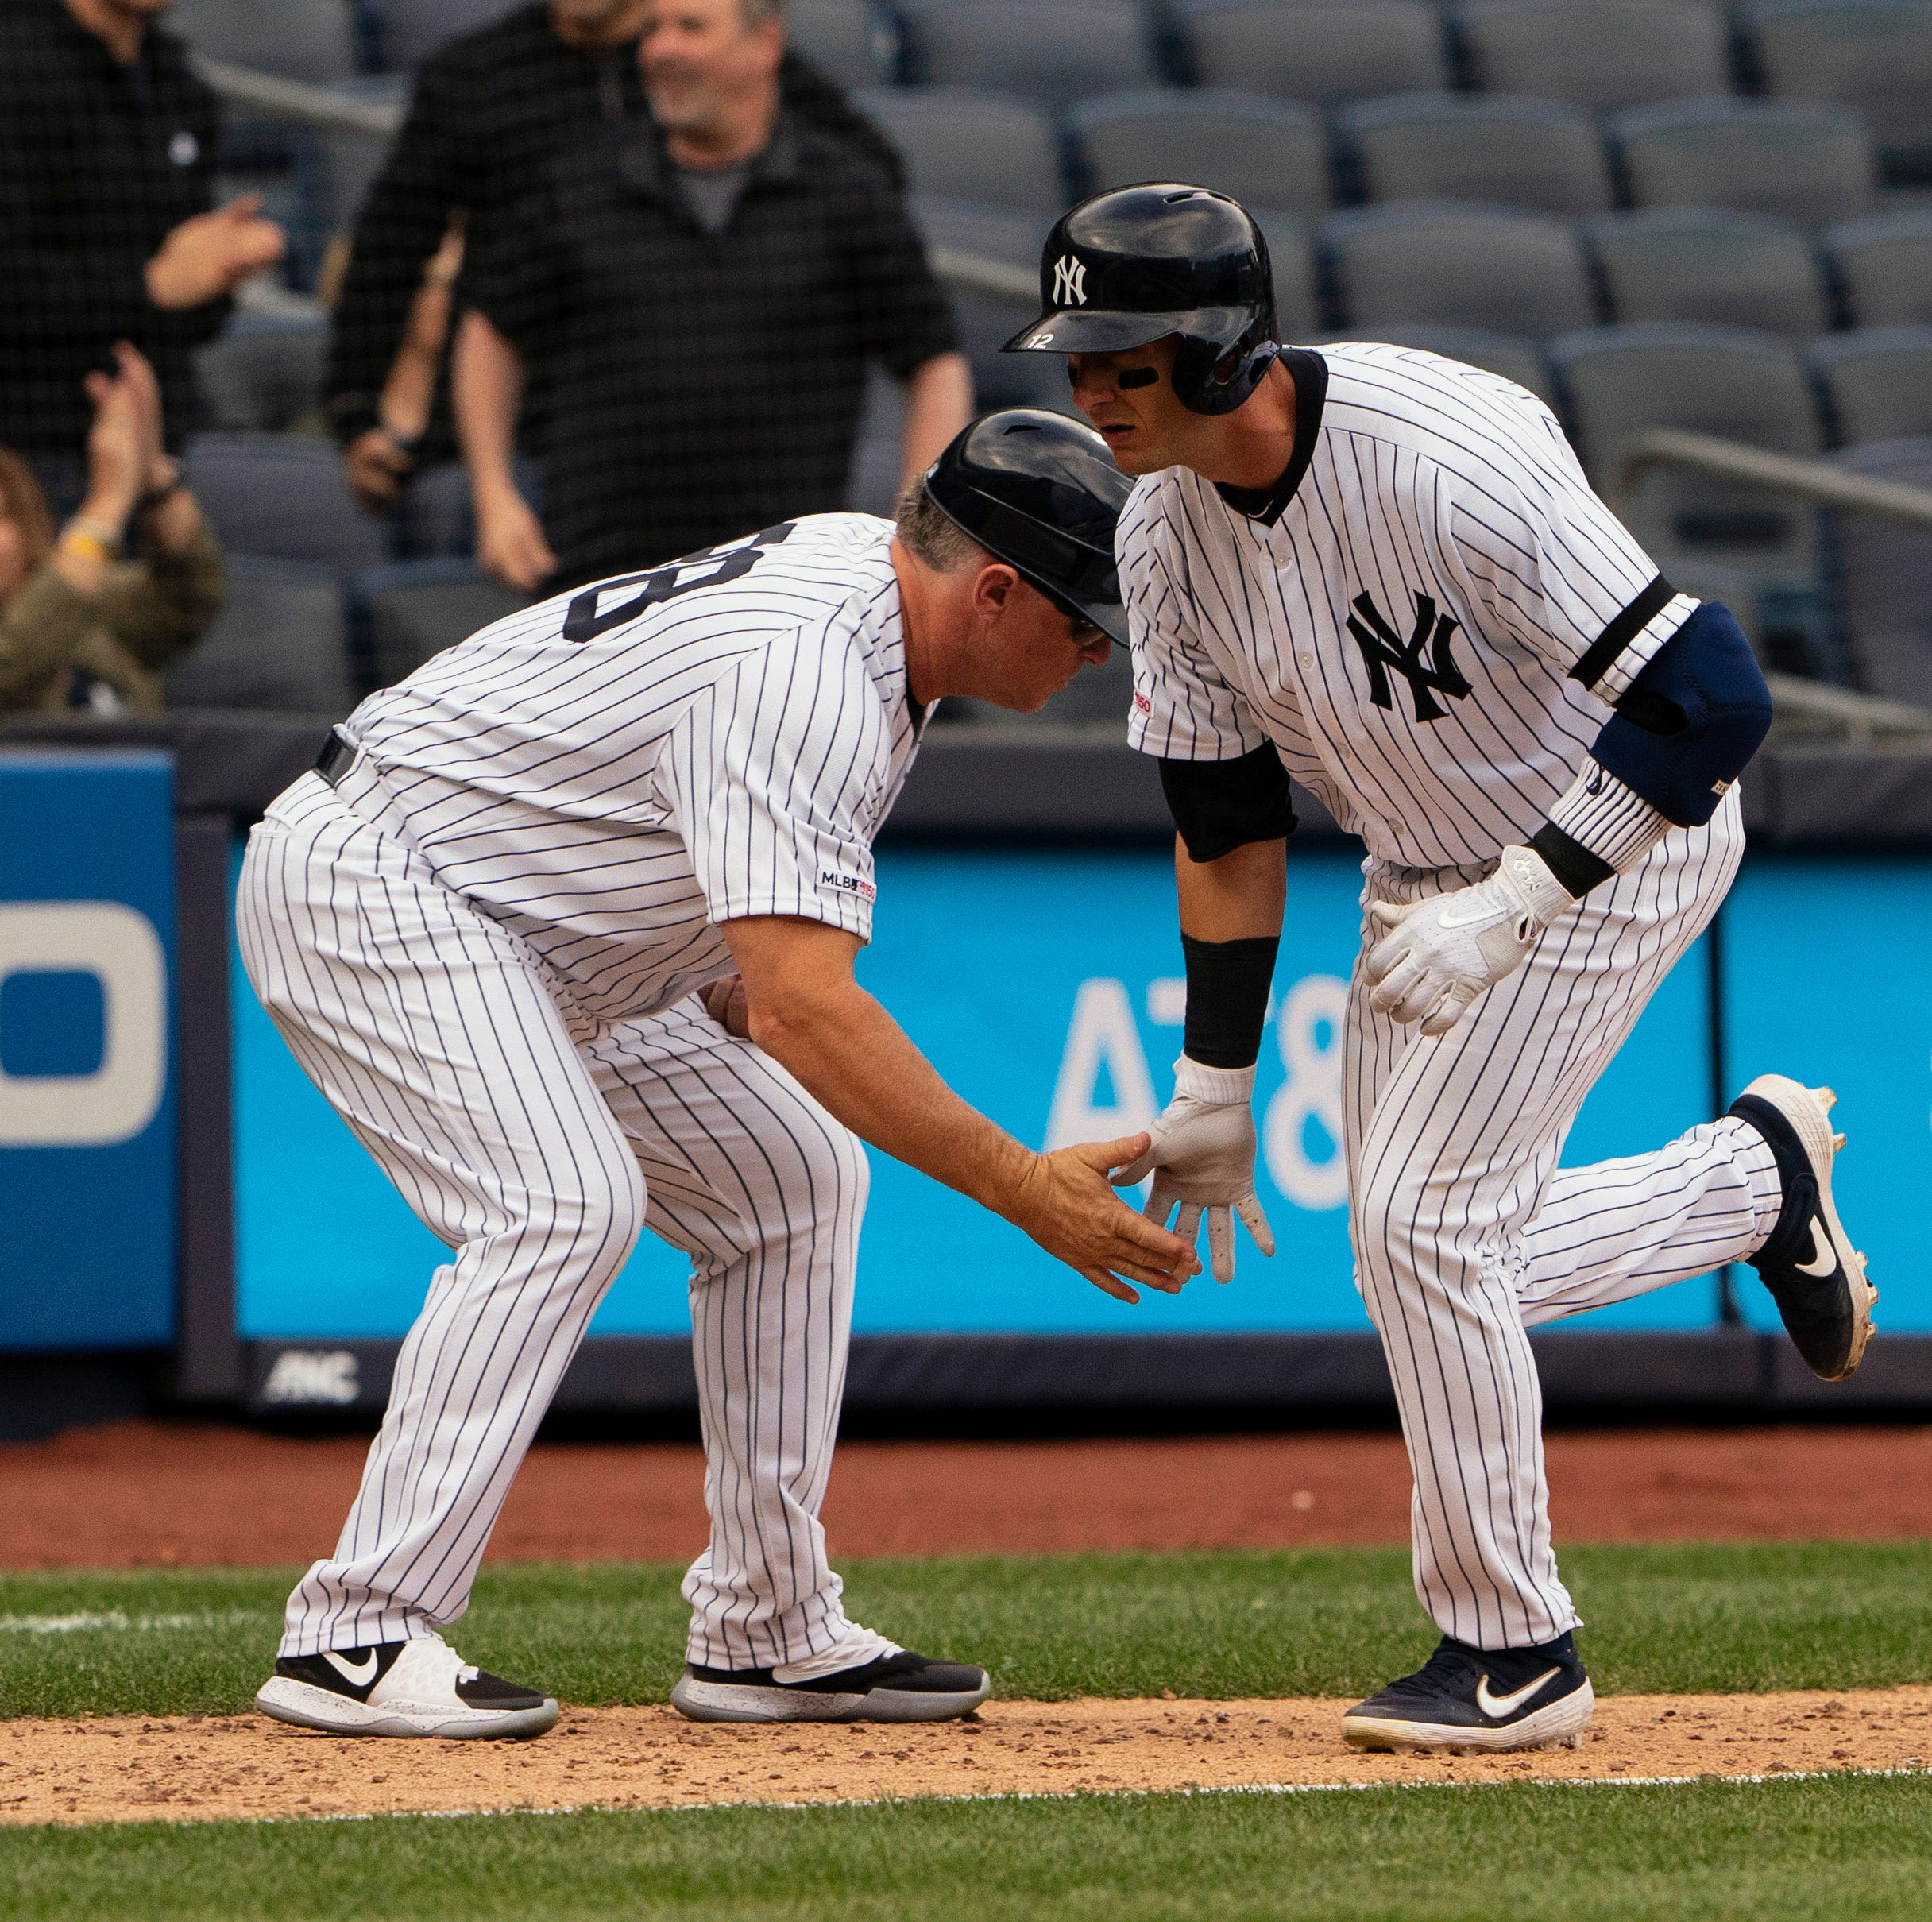 John Sterling debuts Troy Tulowitzki home run call with Yankees